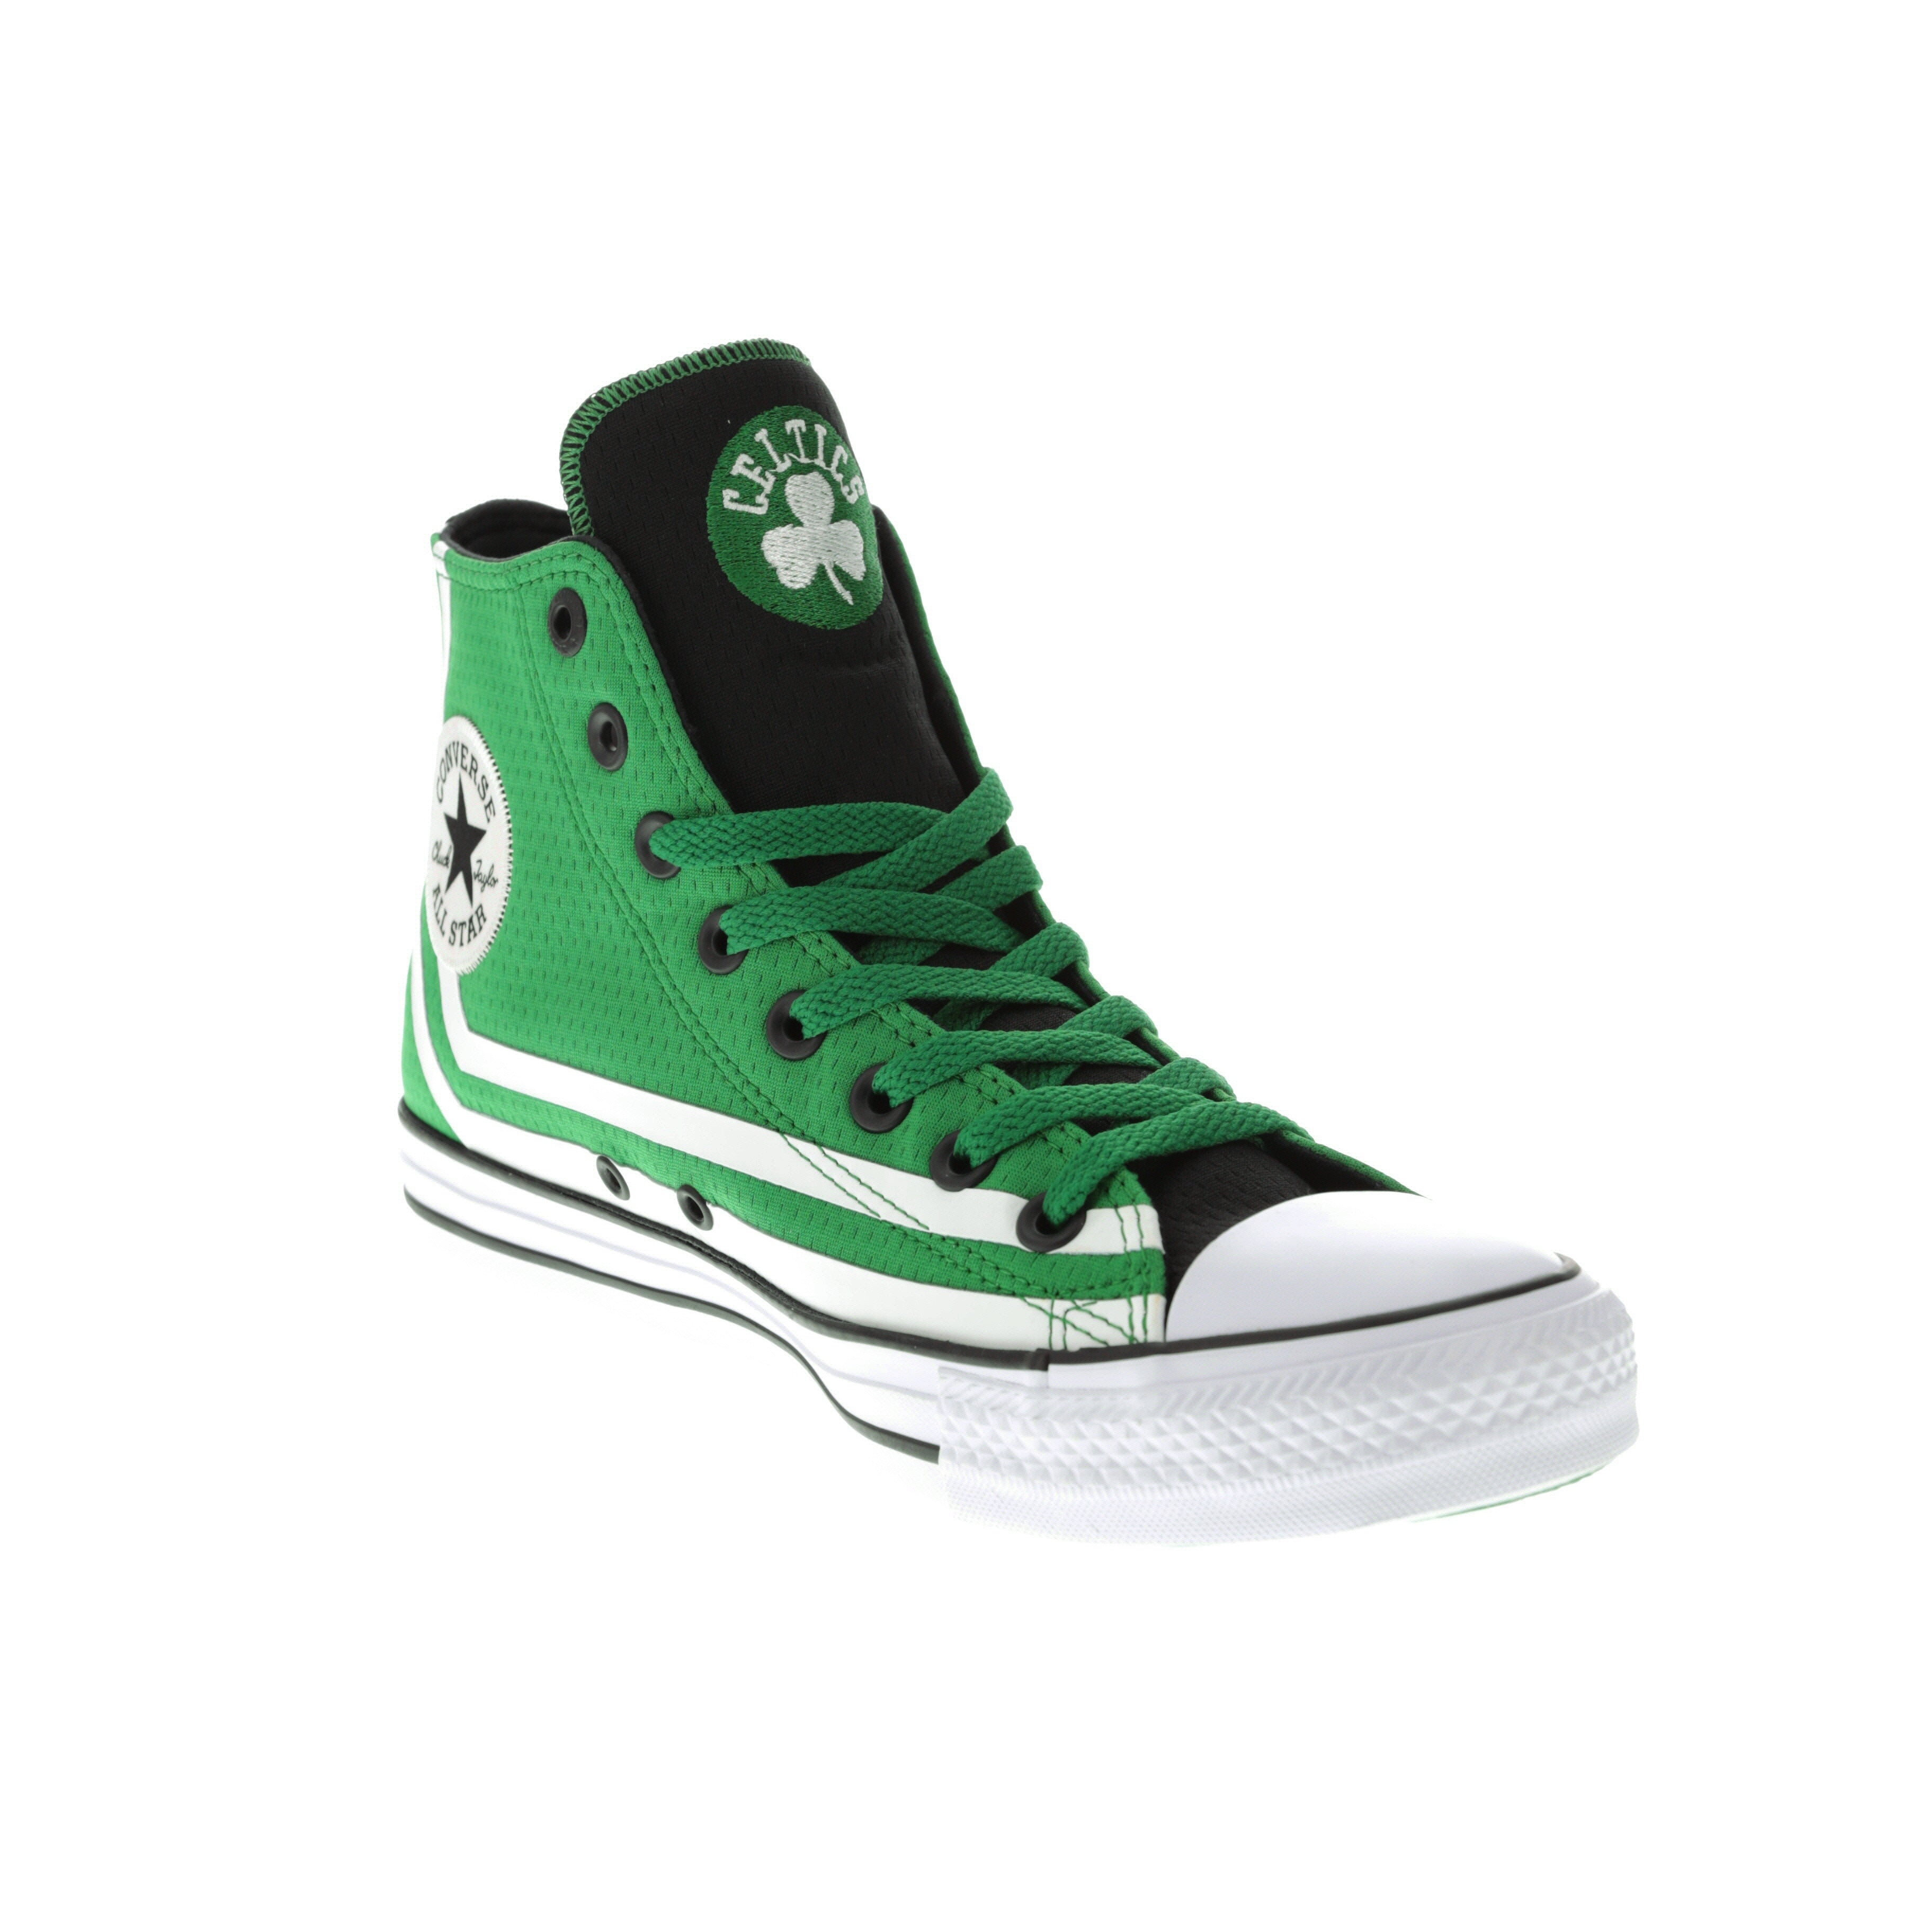 Details about Limited Edition Boston Celtics NBA Converse All Star Chuck Taylor Green Sz 6